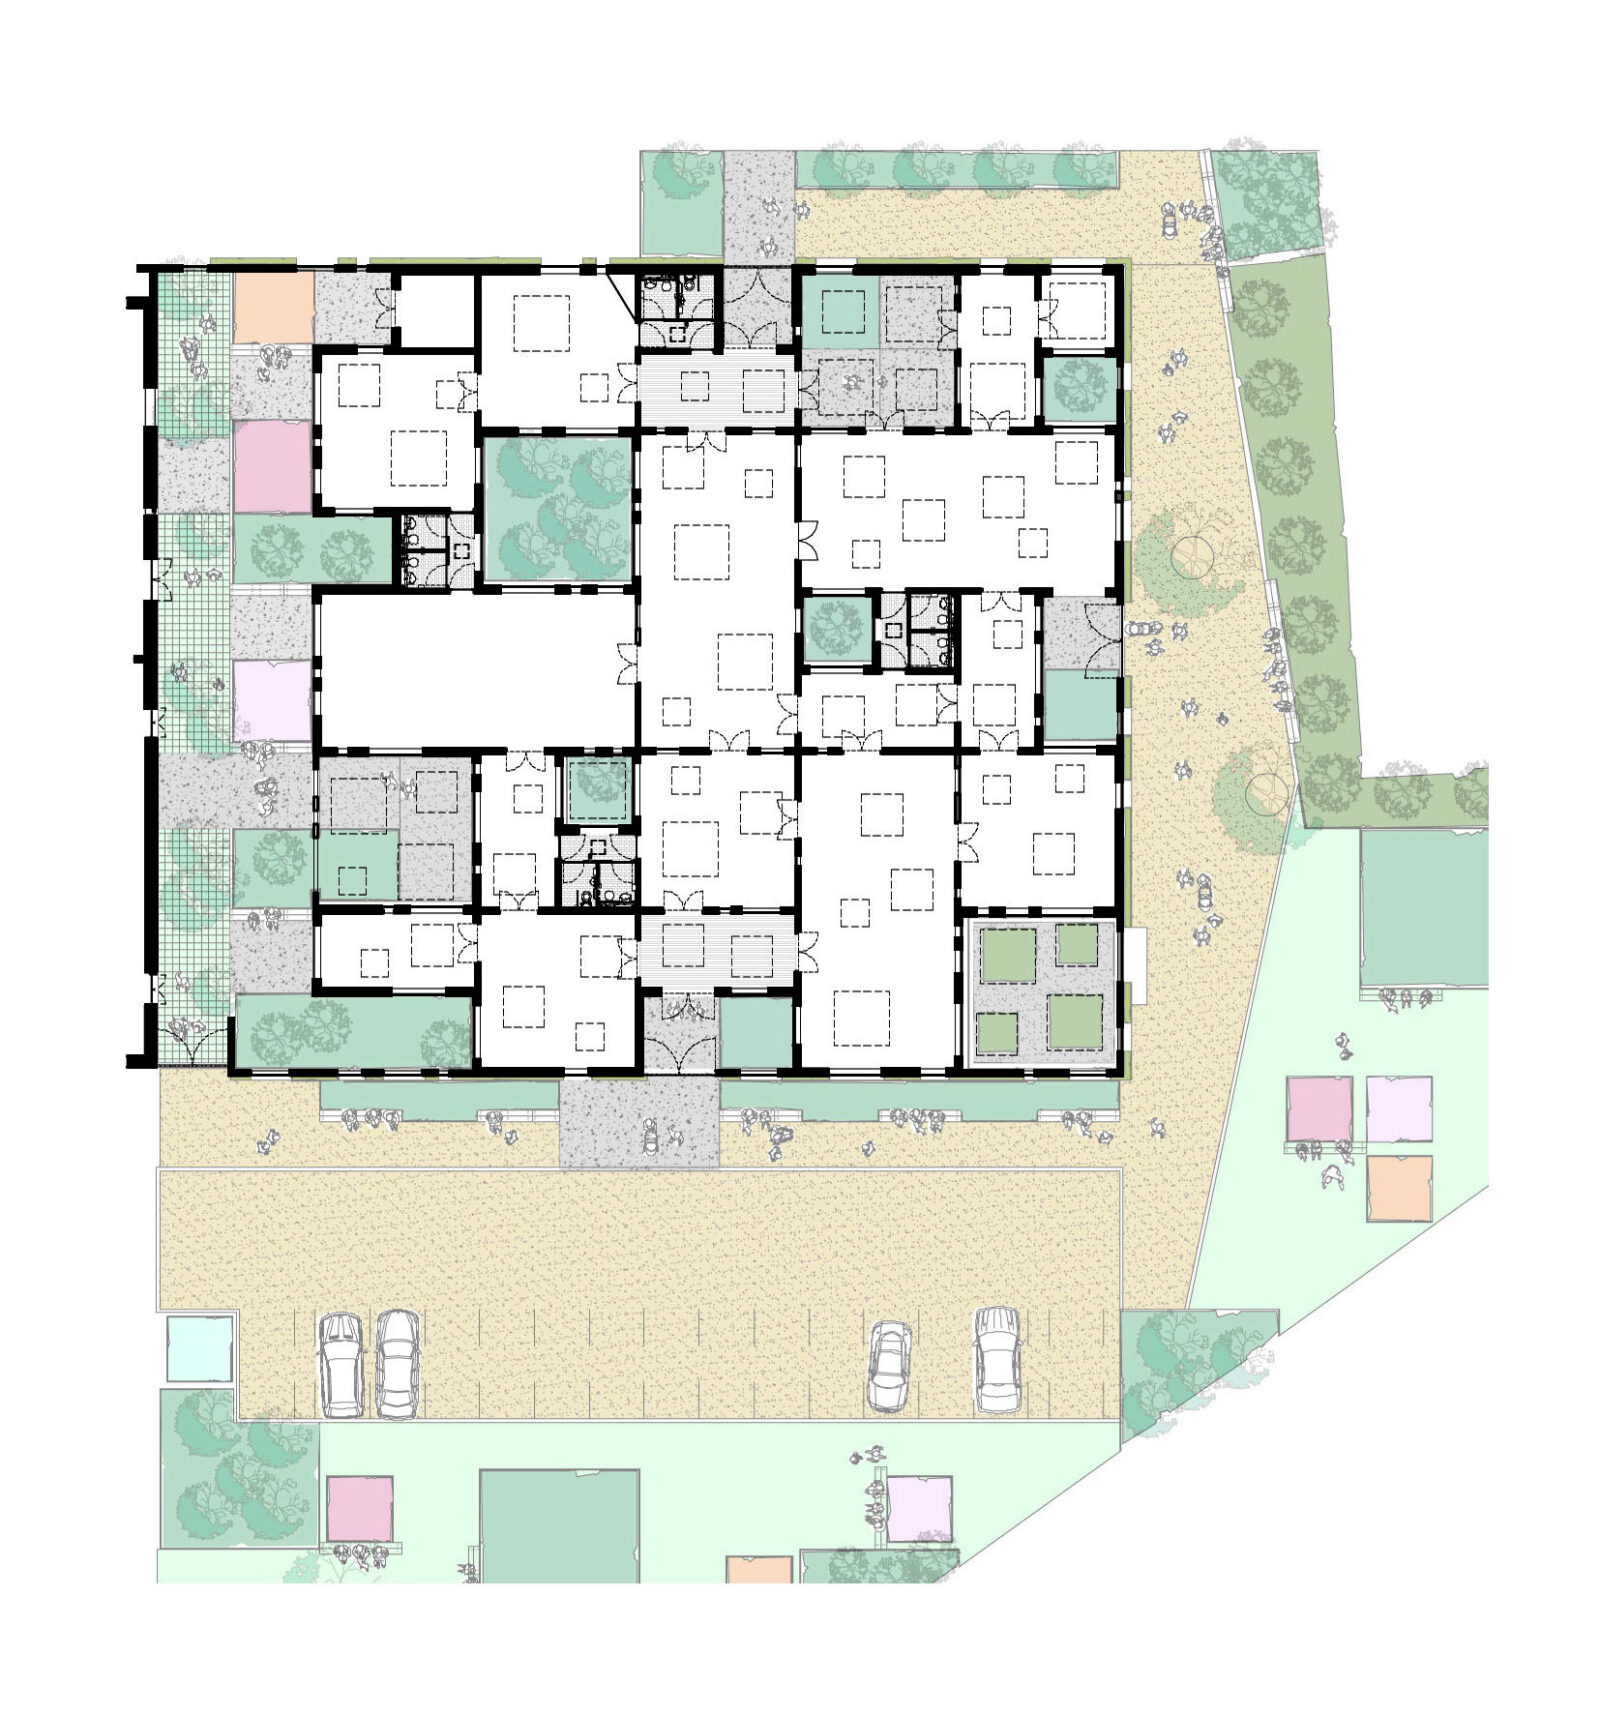 Youth centre henchion reuter architects floor plan jameslax Image collections